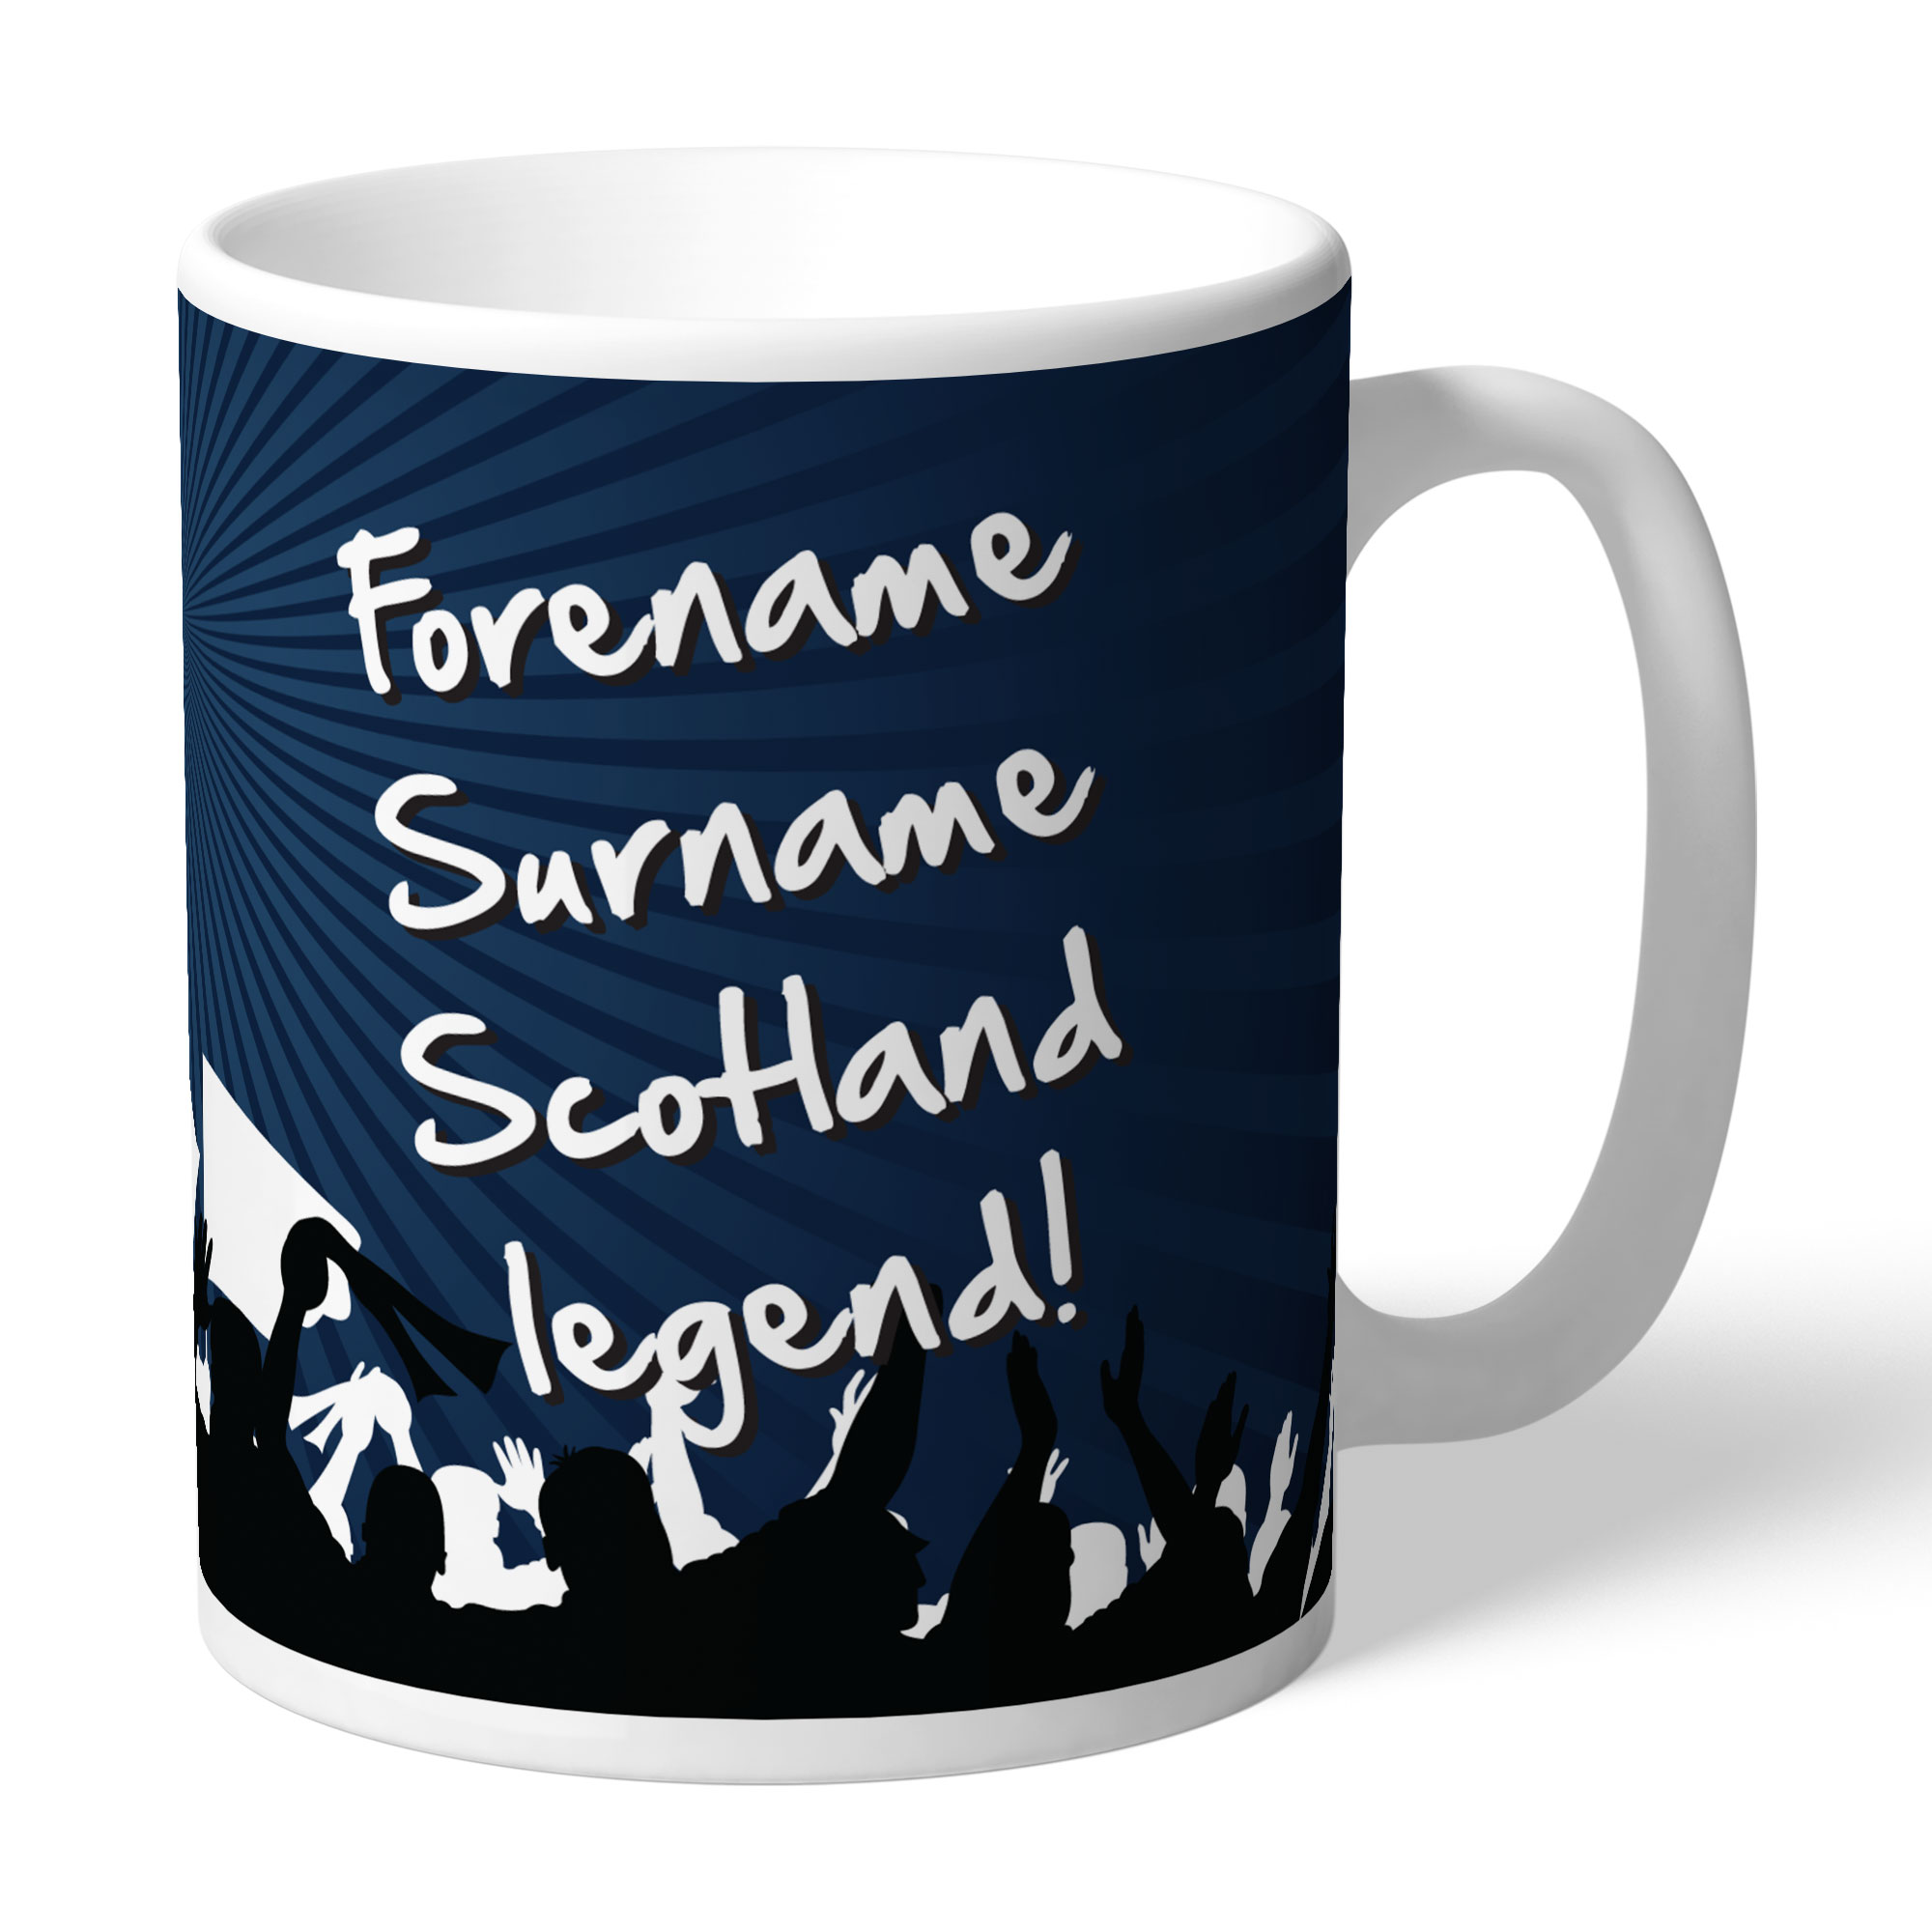 Scotland Legend Mug